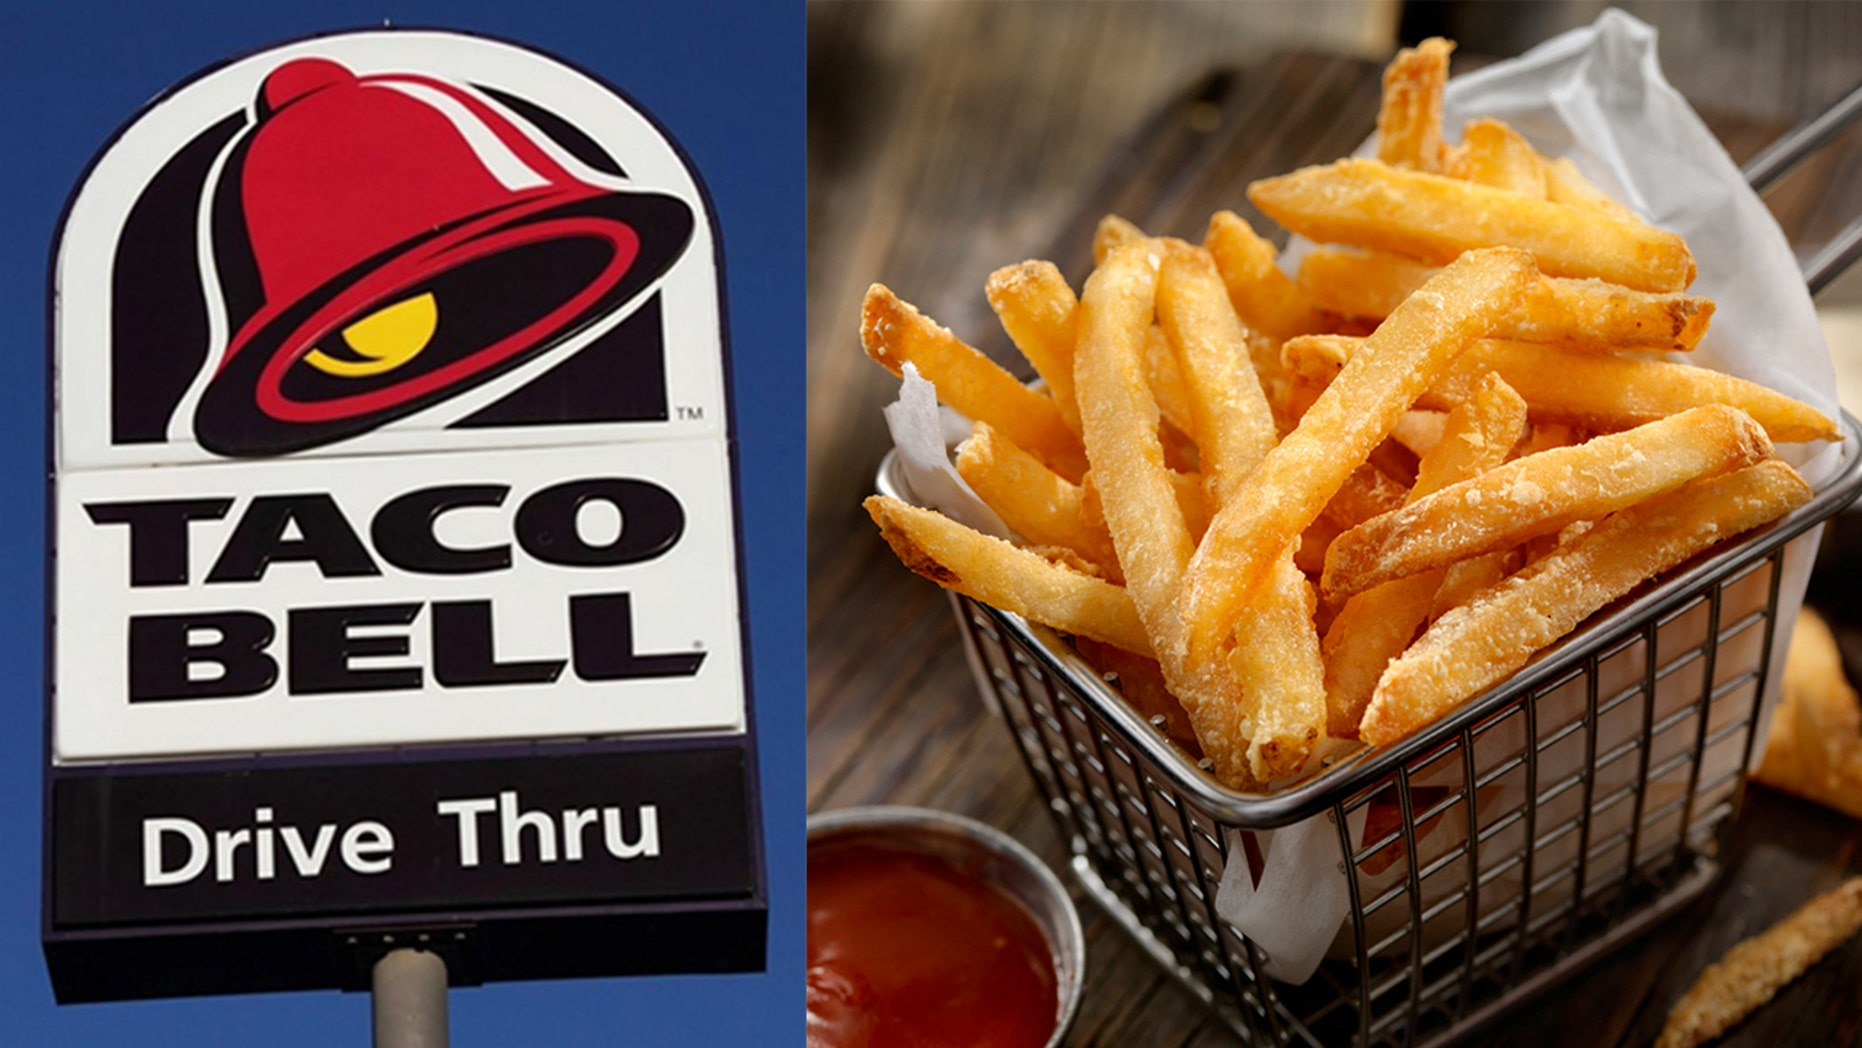 Could french fries claim their rightful place on T-Bell menus?